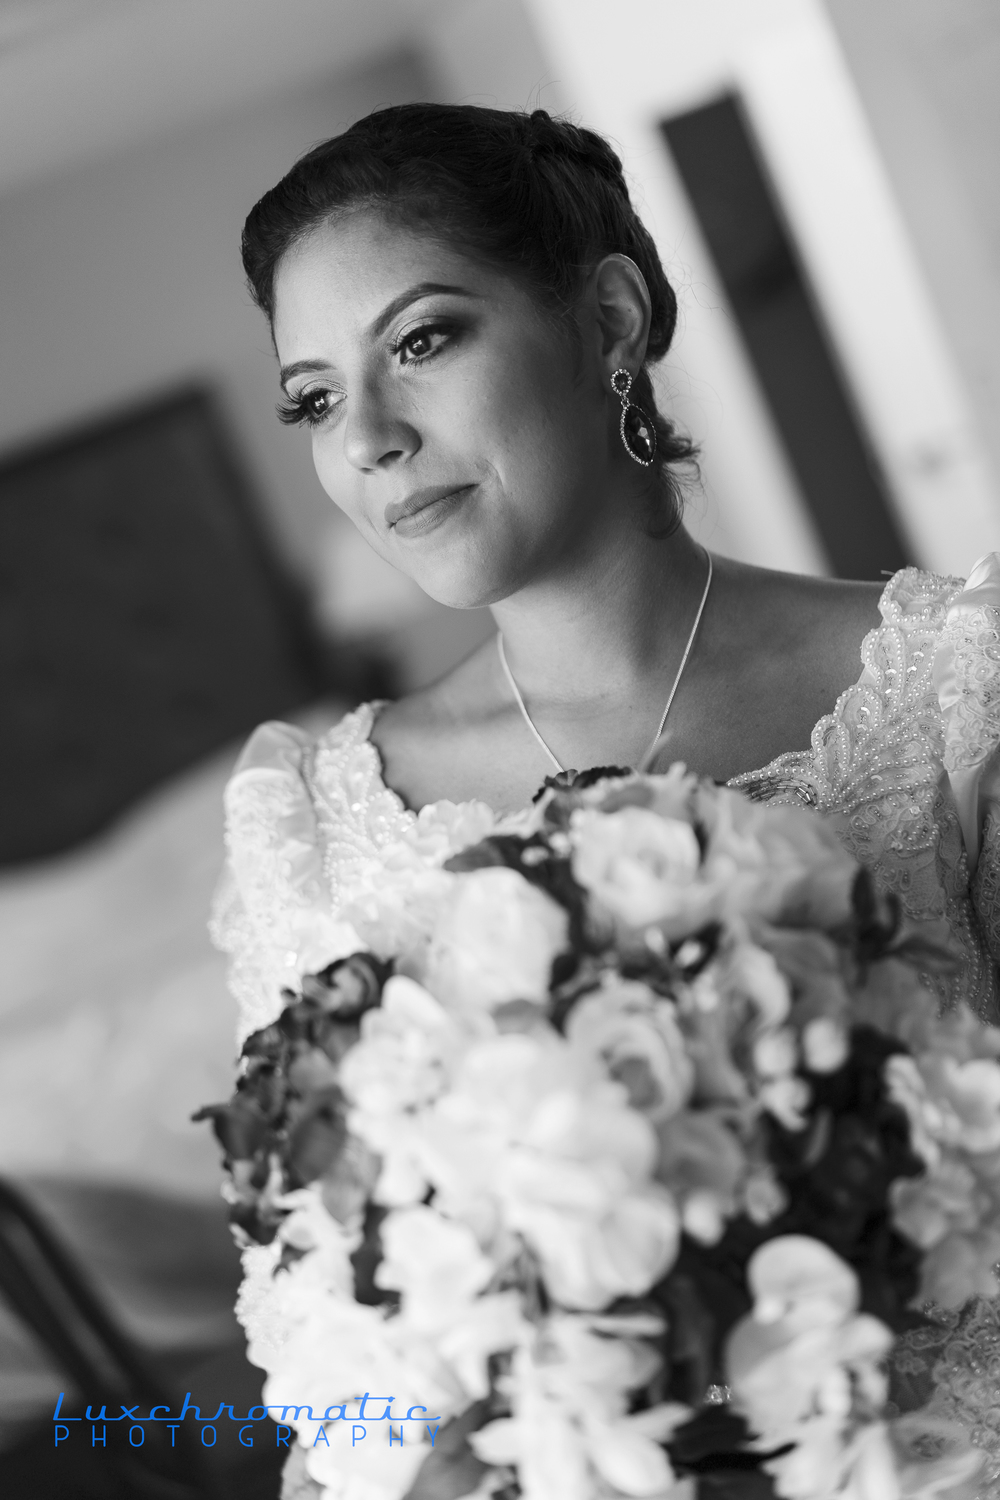 San-Francisco-Bay-Area-Wedding-Fremont-Bride-Luxchromatic-Photography_Diondra_Scott-1203 copy.jpg